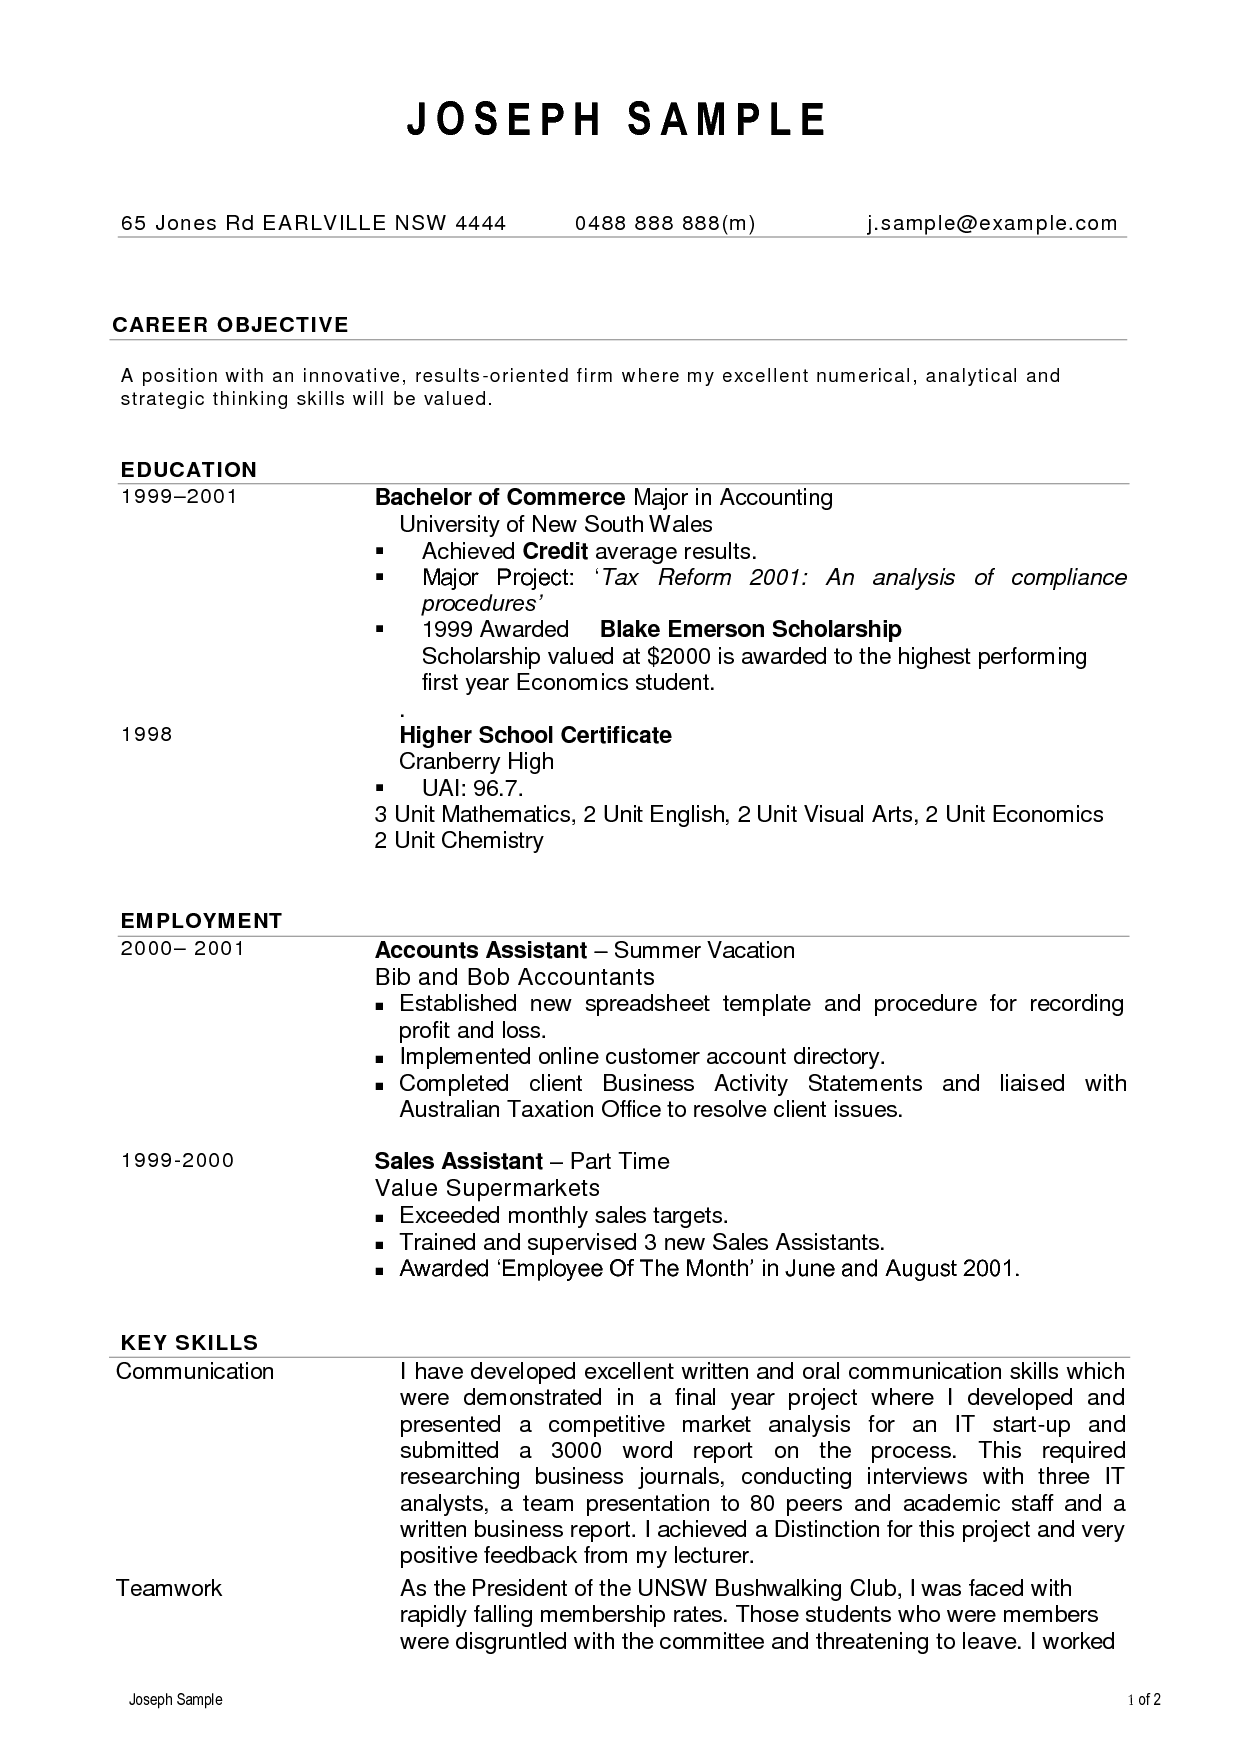 resume format accountant doc cover latter sample resume format accountant doc